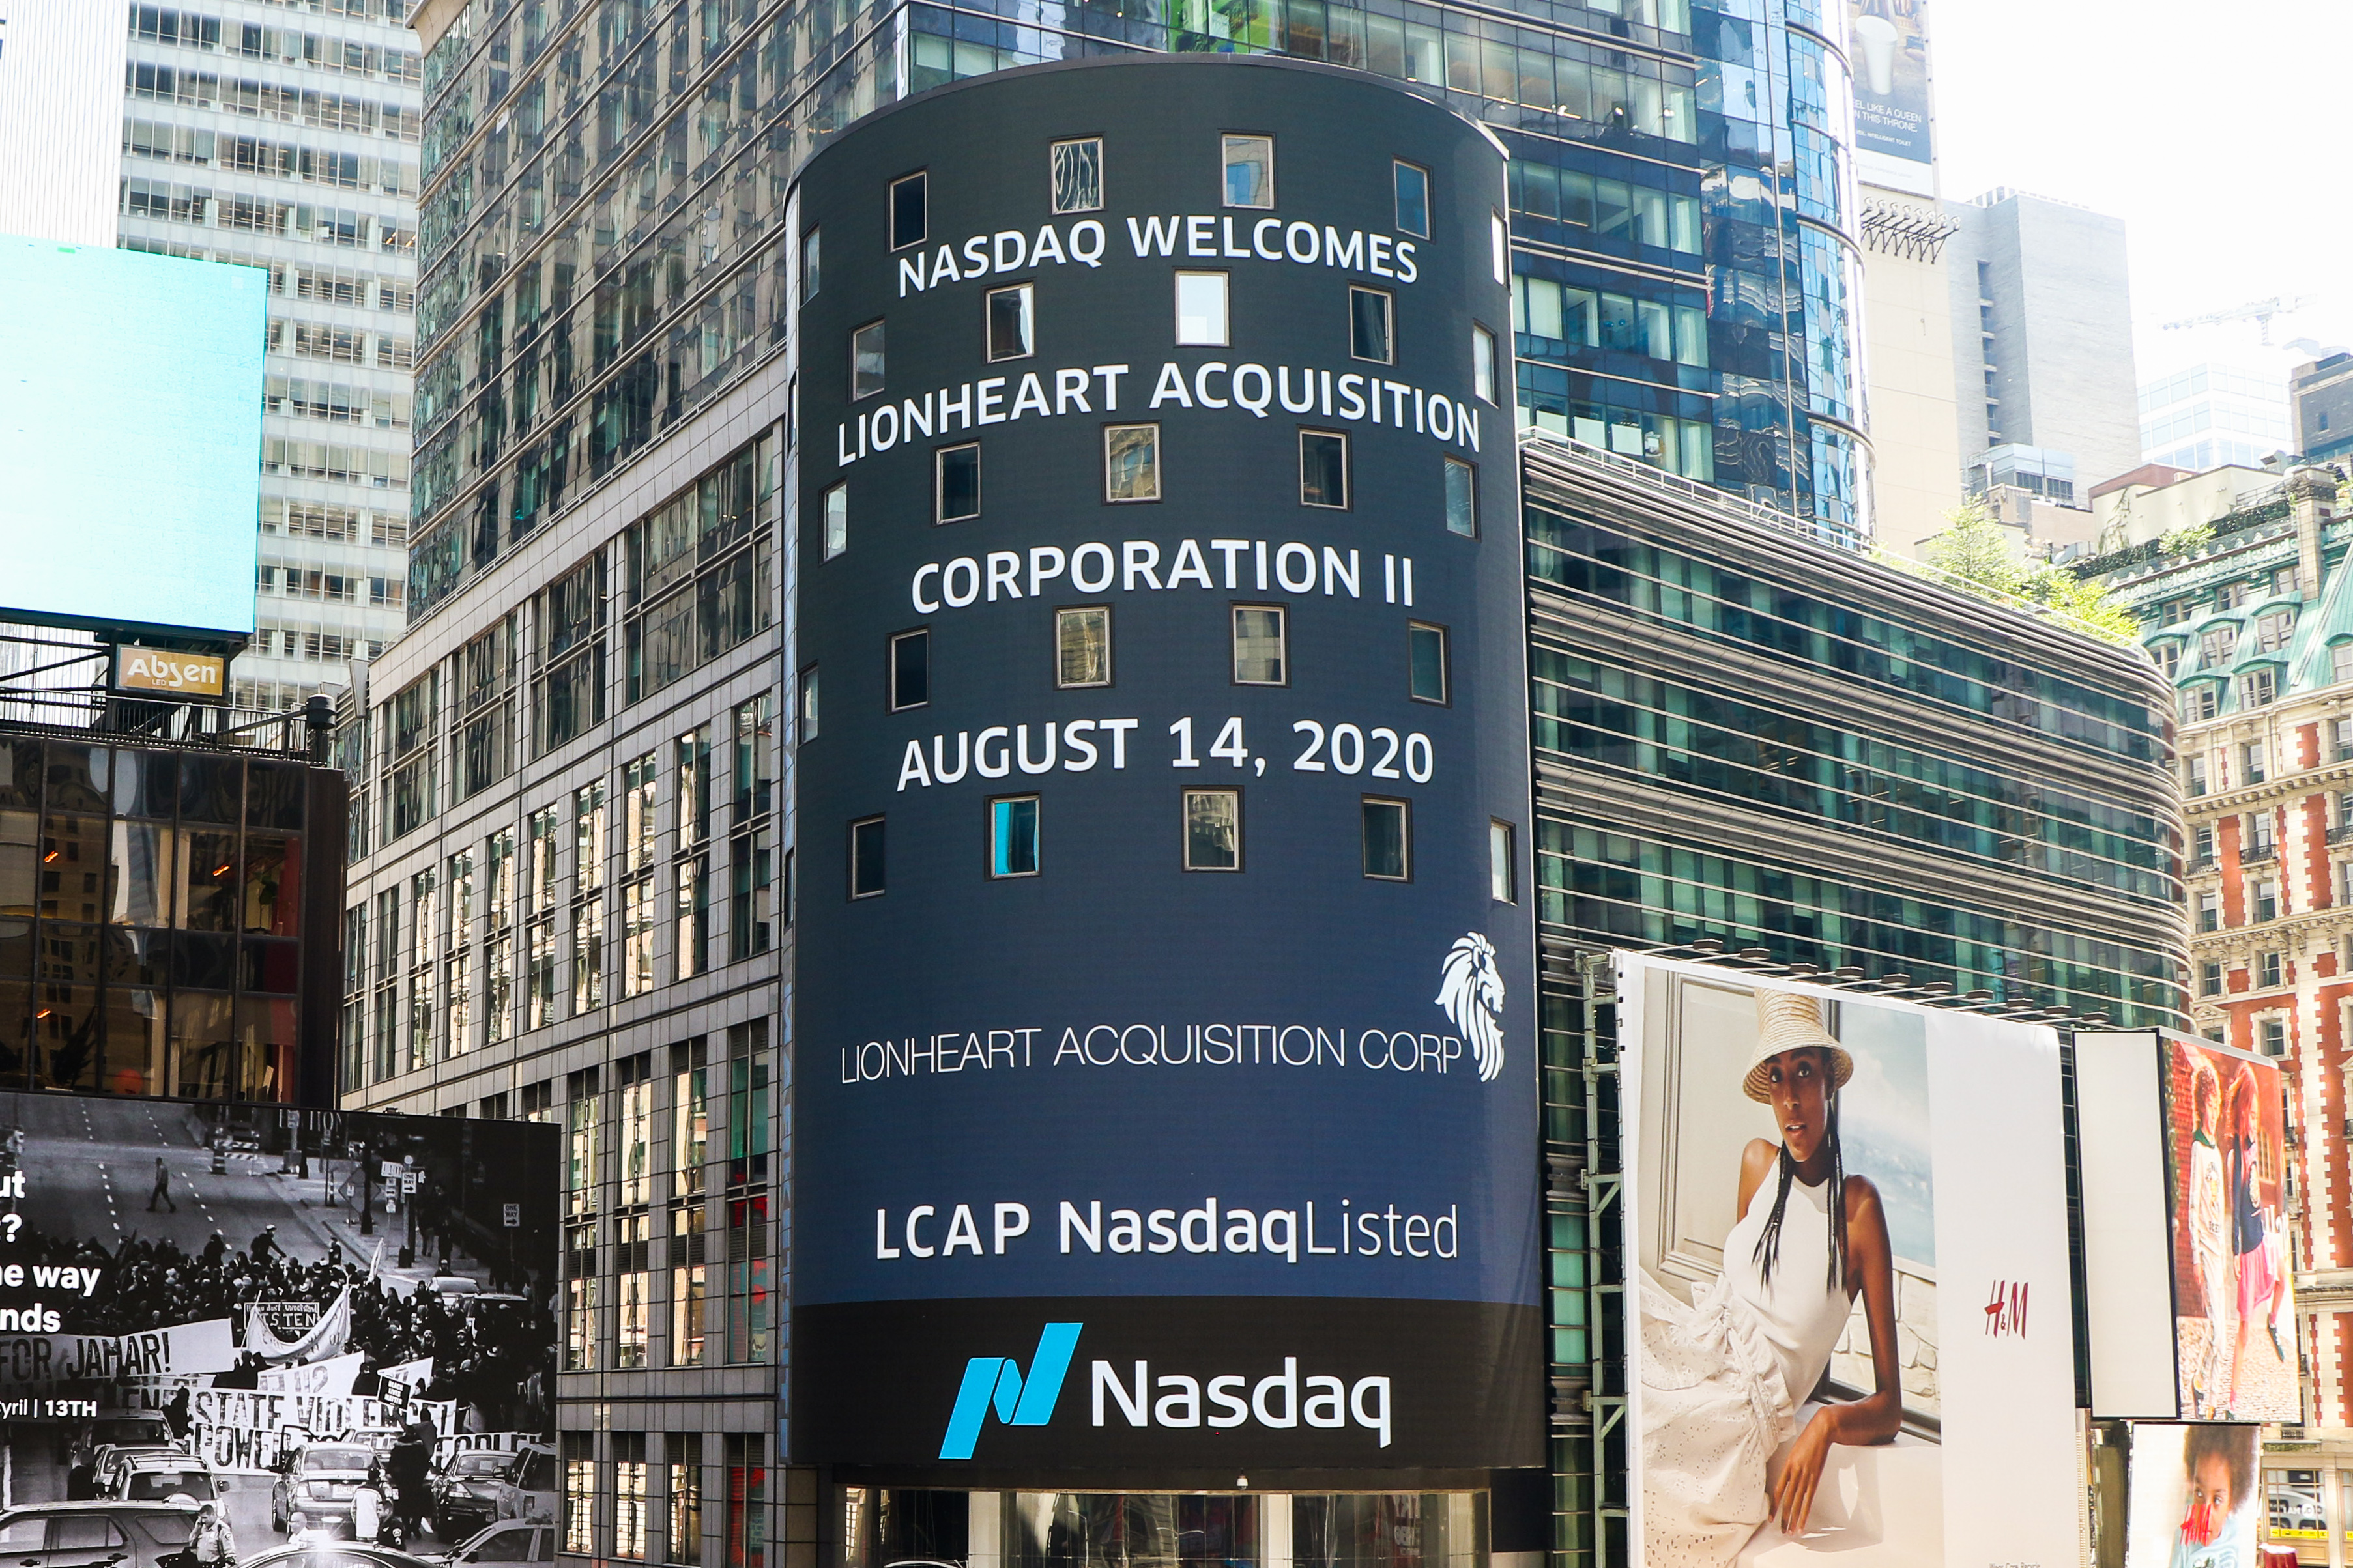 Lionheart Acquisition Corp